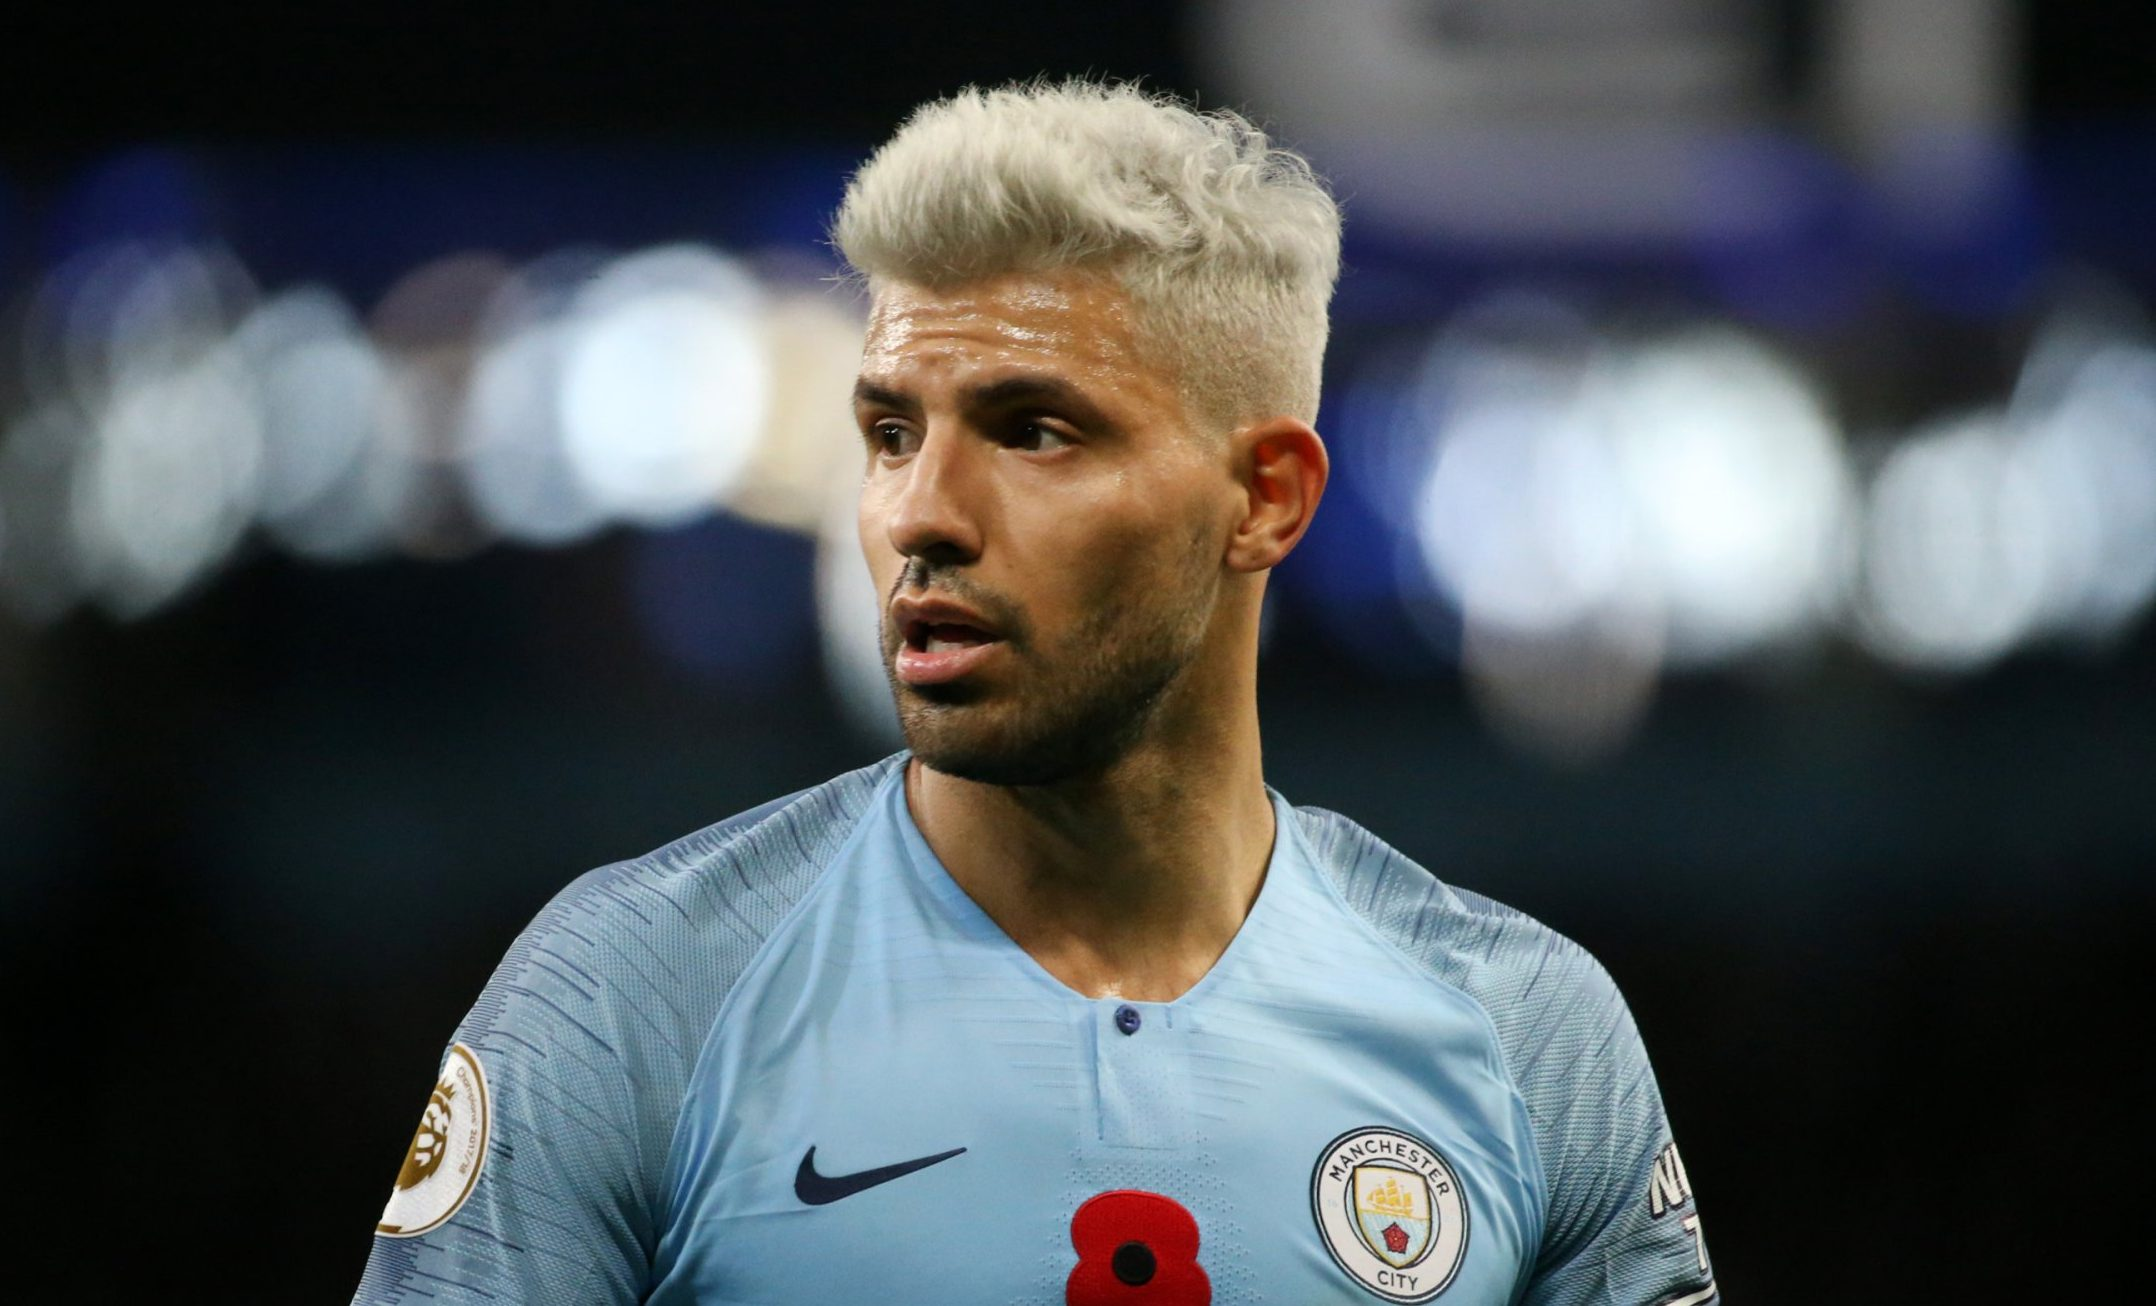 MANCHESTER, ENGLAND - NOVEMBER 11: Sergio Aguero of Manchester City looks on during the Premier League match between Manchester City and Manchester United at Etihad Stadium on November 11, 2018 in Manchester, United Kingdom. (Photo by Tom Flathers/Man City via Getty Images)